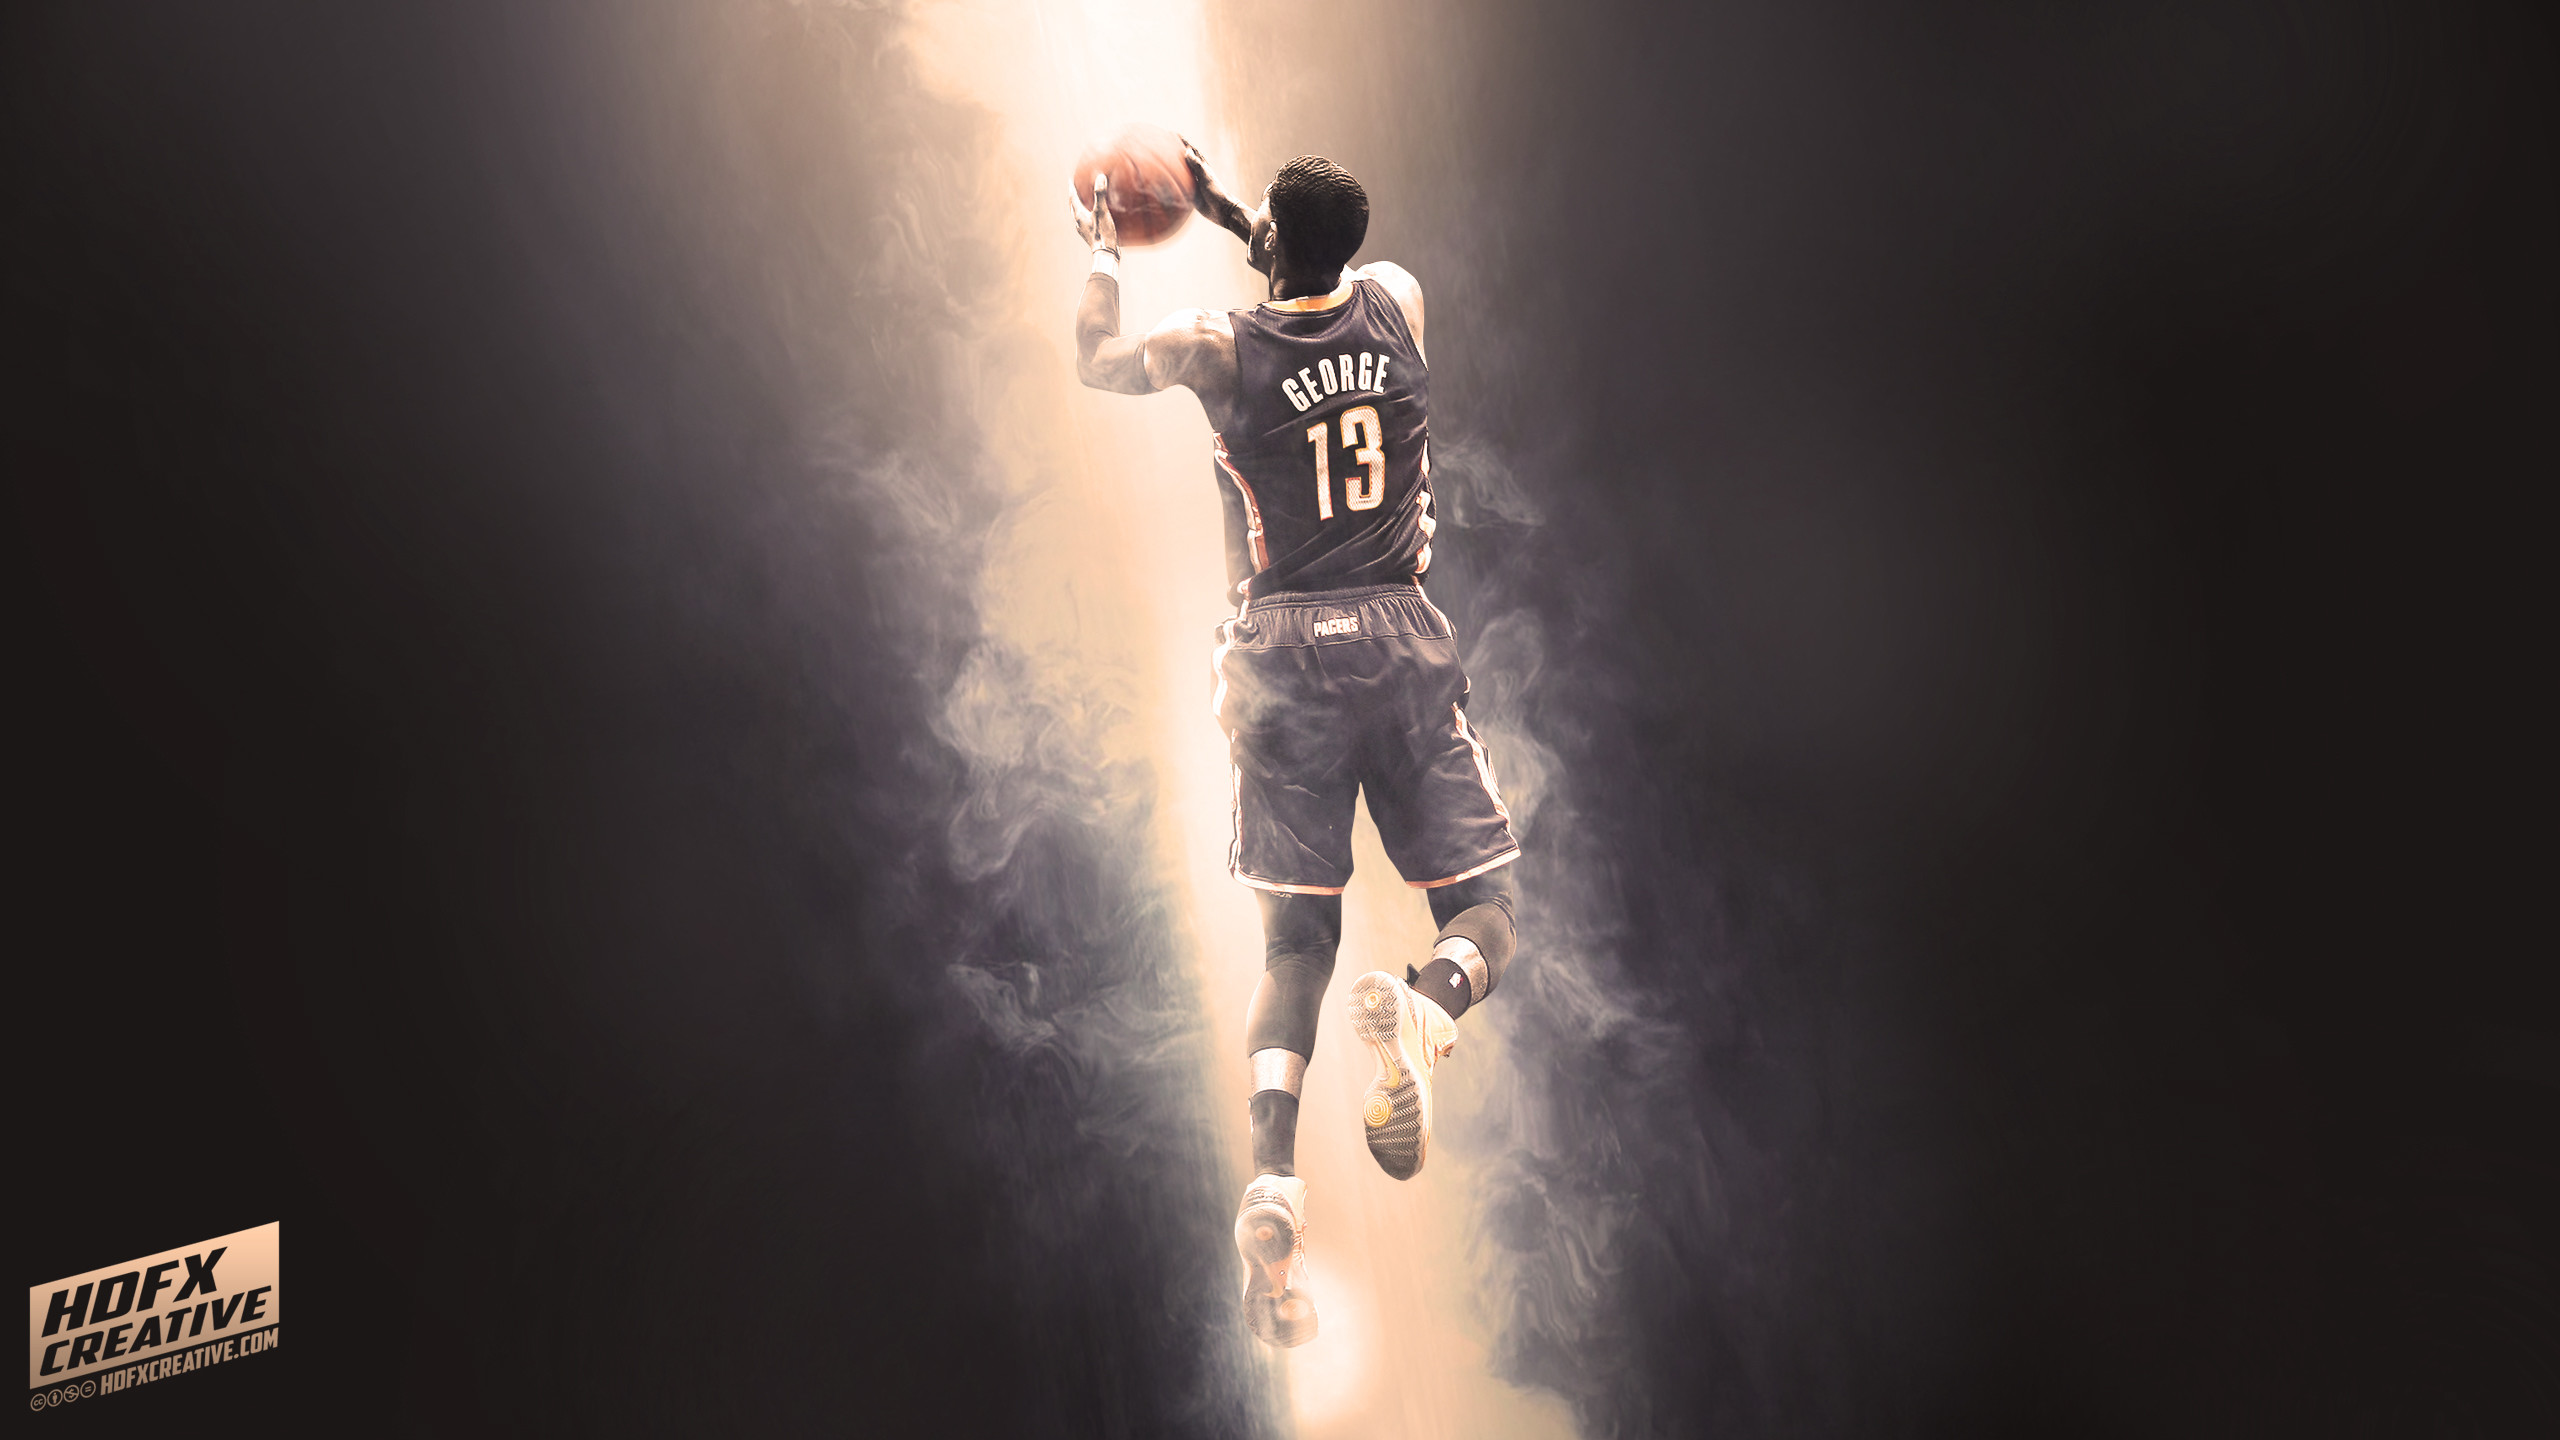 Paul george dunk wallpaper 74 images 2560x1440 wallpaper paul george indiana pacers basketball nba voltagebd Image collections